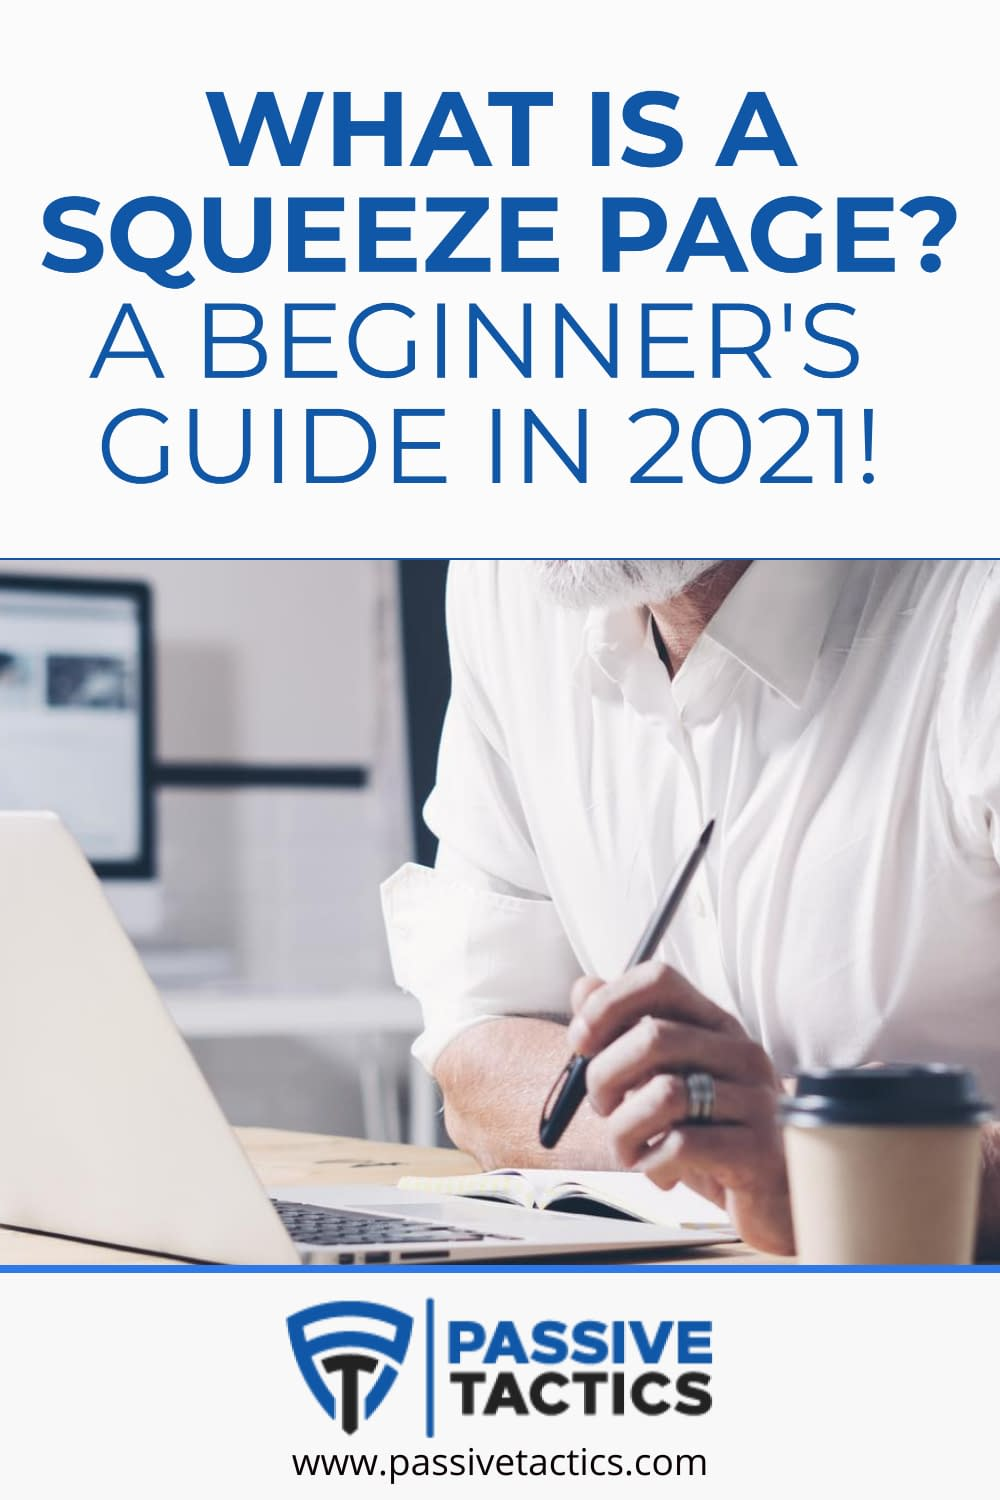 What Is A Squeeze Page? A Beginner\'s Guide In 2021!